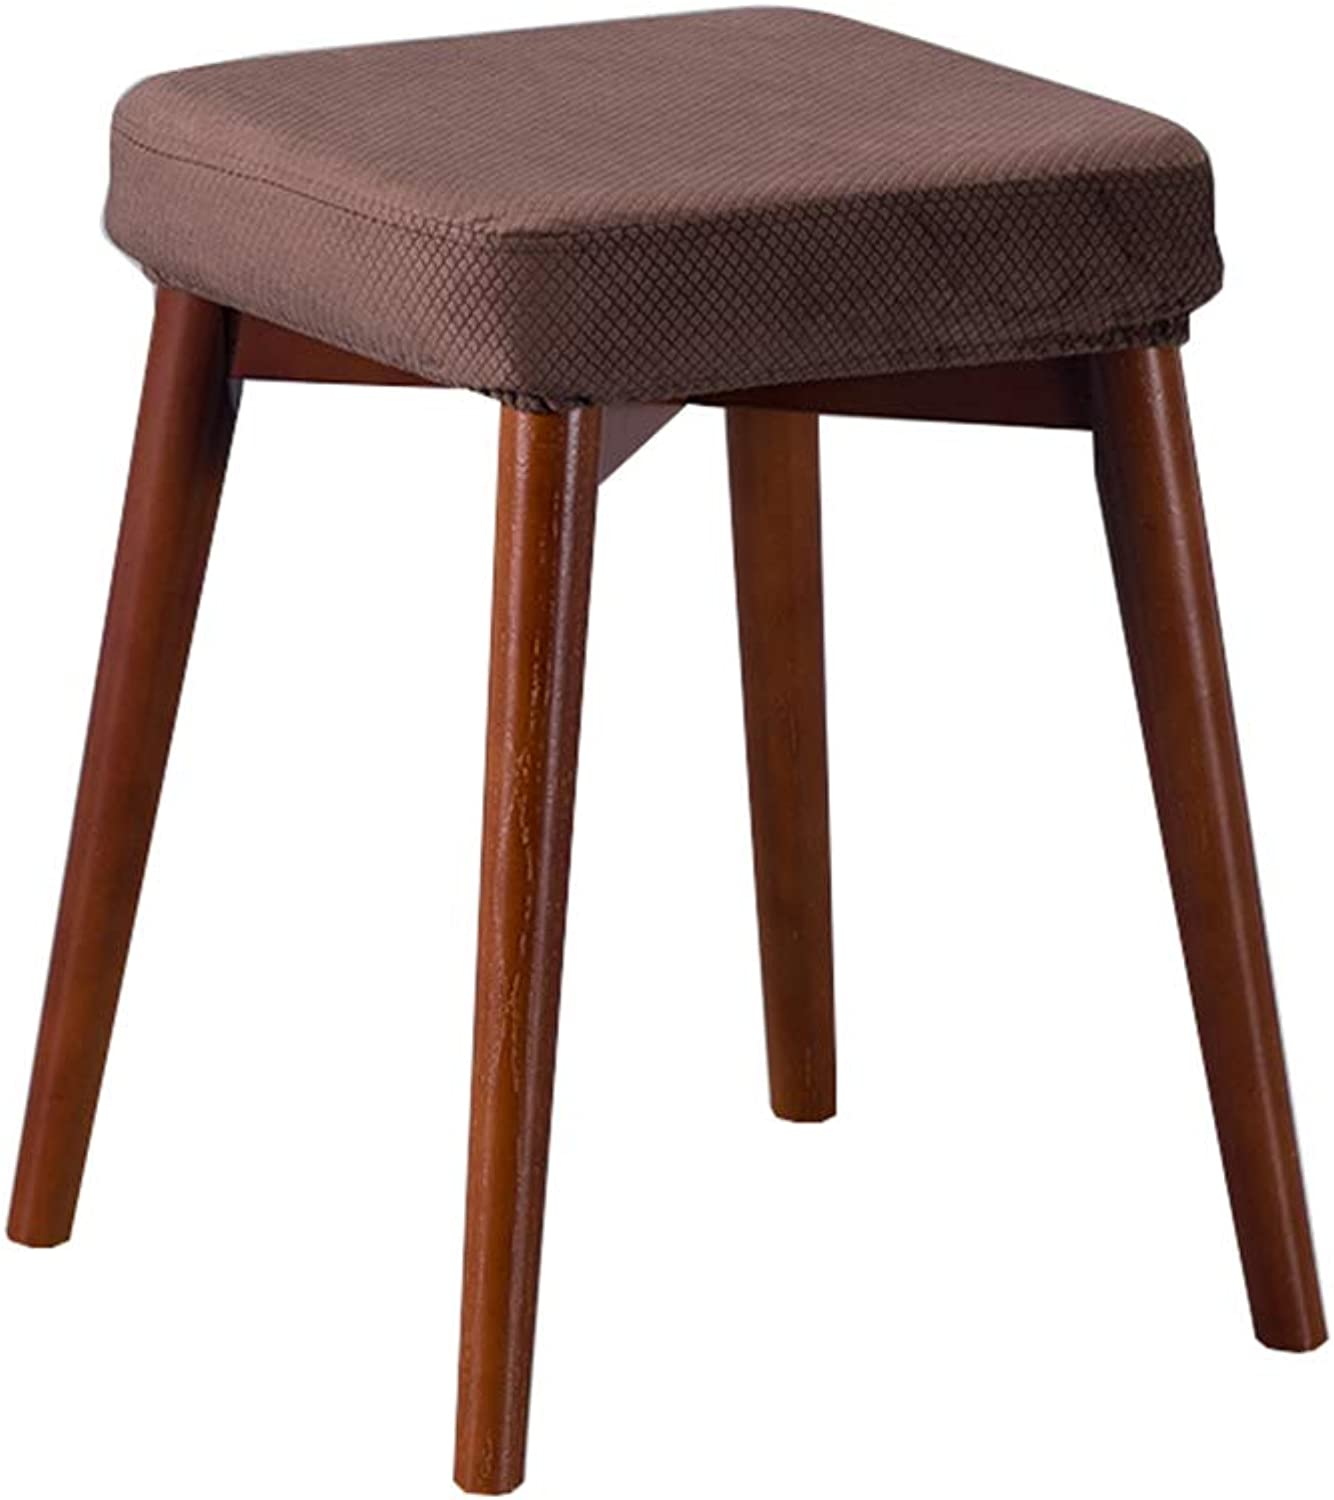 Solid Wood Square Stool Home Kitchen Bedroom Living Room Dining Table Mobile Stool (color   H)